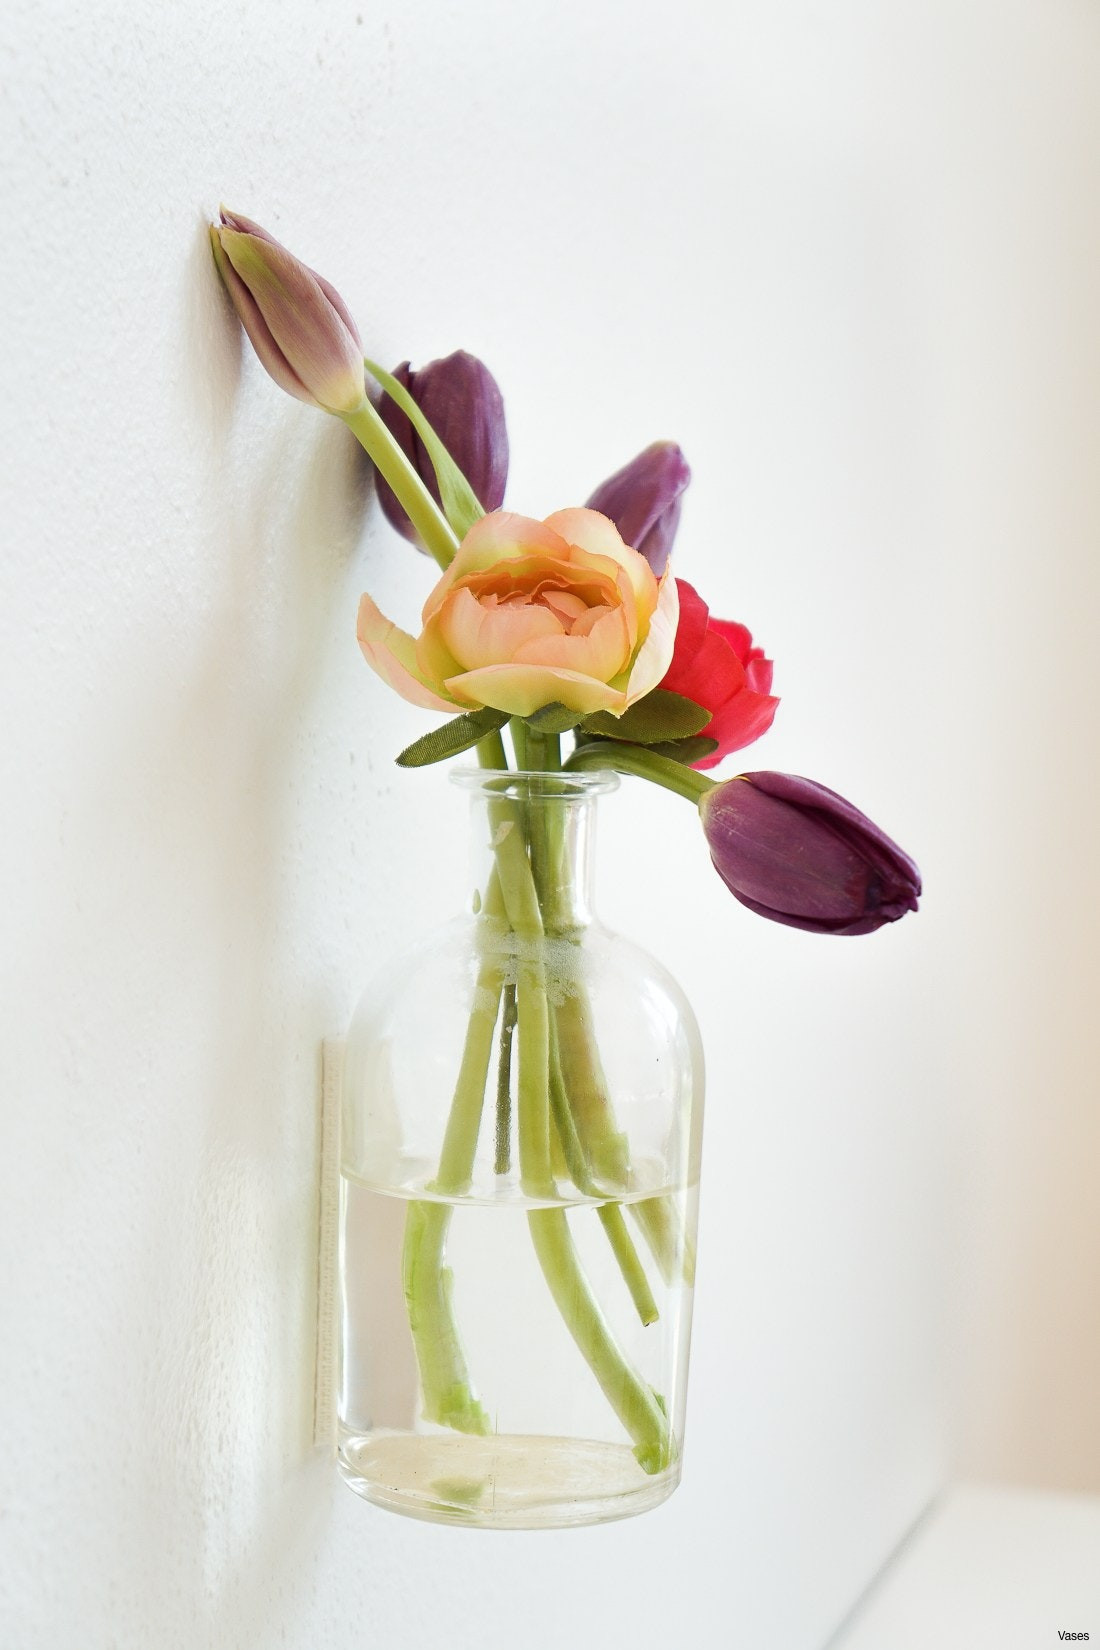 How to Make Floating Flowers In Vase Of Flower Wall Vase Pics Il Fullxfull L7e9h Vases Wall Flower Vase In Flower Wall Vase Pics Il Fullxfull L7e9h Vases Wall Flower Vase Zoomi 0d Decor Inspiration